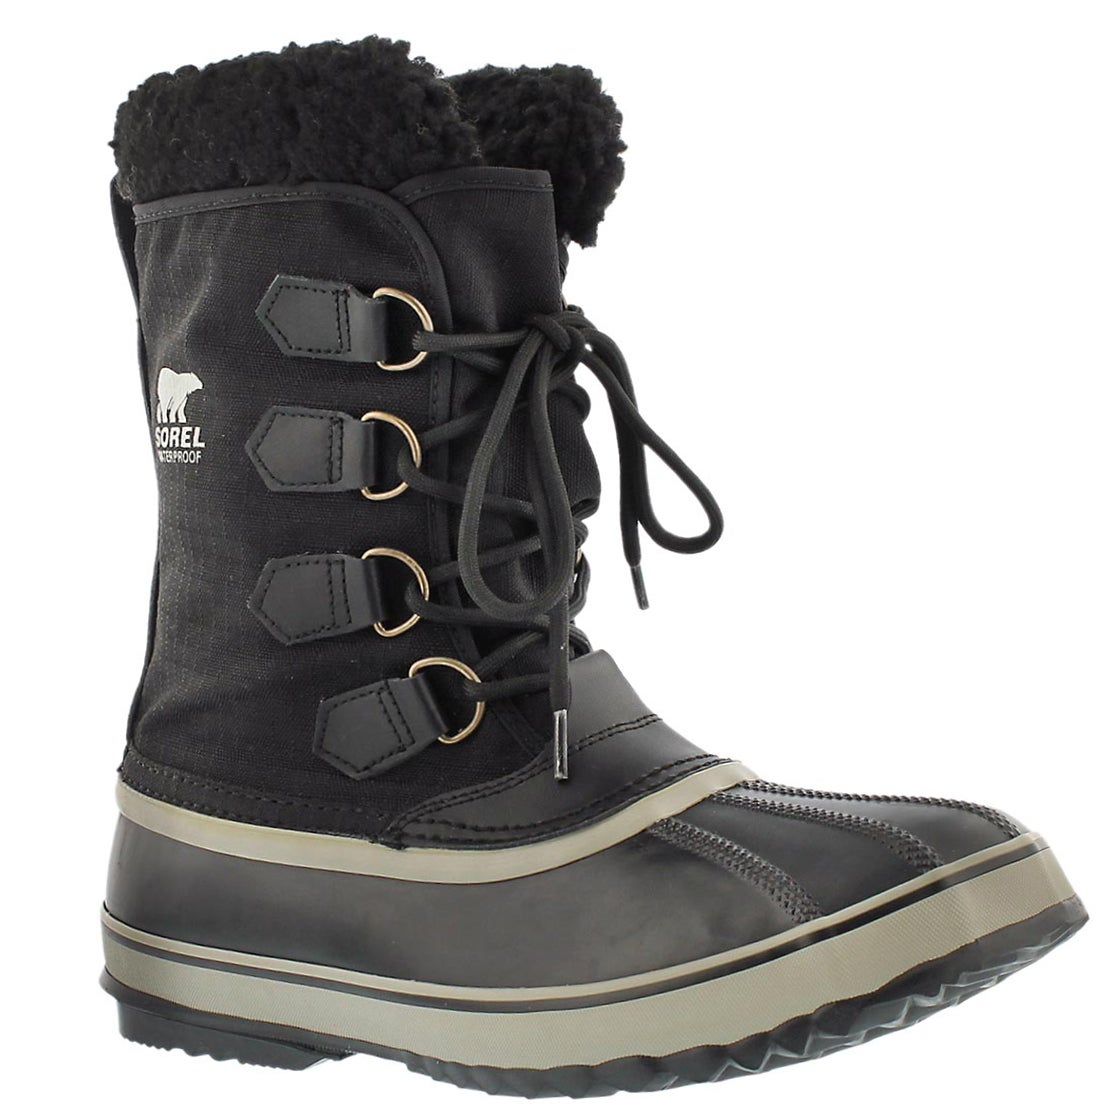 Mns 1964 Pac Nylon blk winter boot